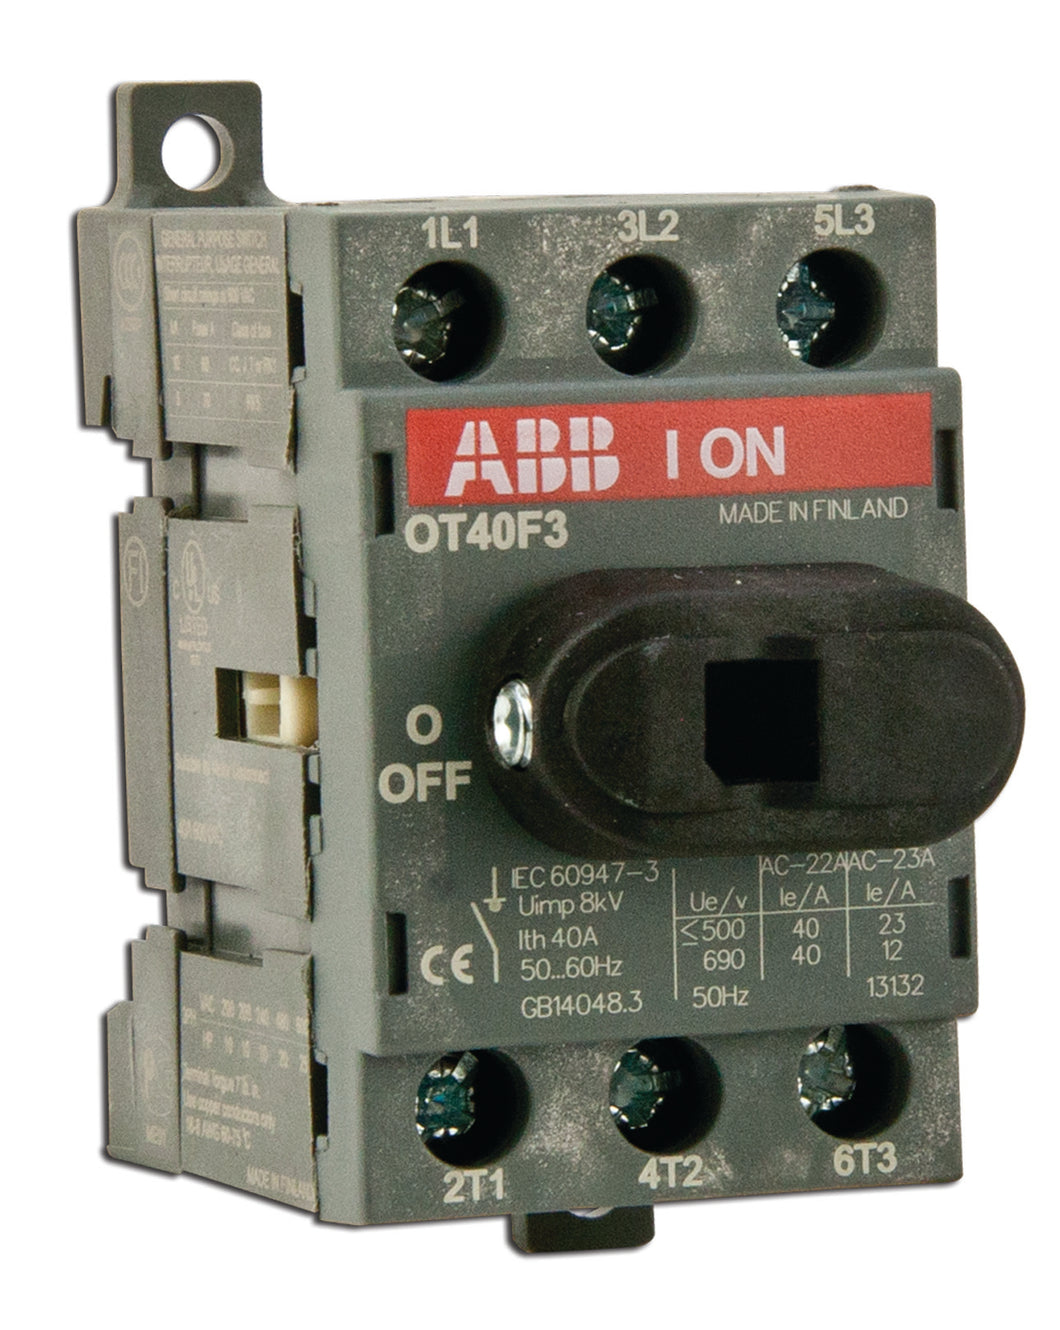 ABB OT40F3 Disconnect switch, Non-Fused, 40A, 3P, 690VAC, Front Operated ABB OT40F3